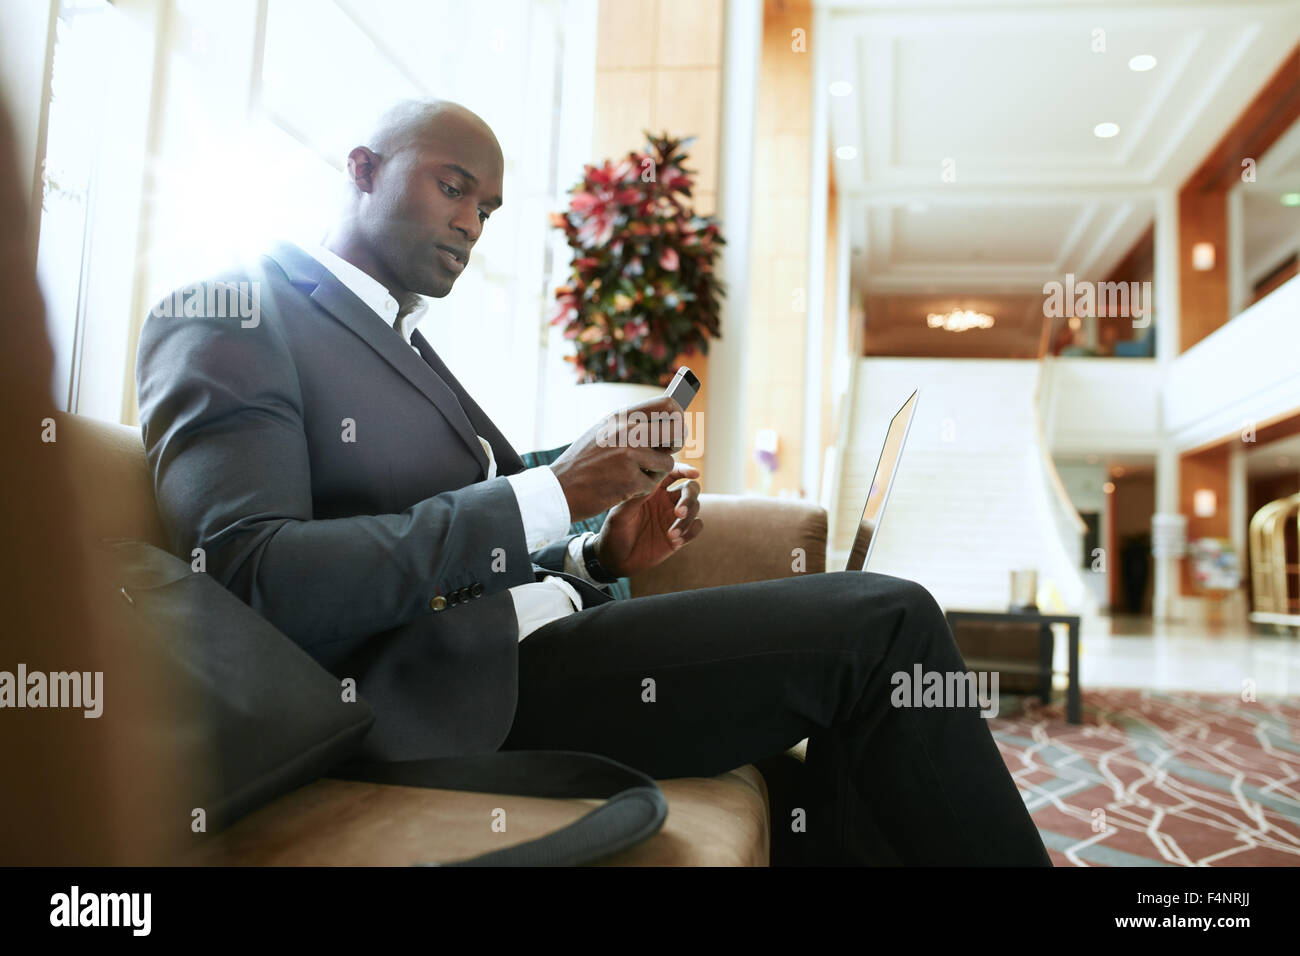 Male executive sitting on sofa looking at his mobile phone. African businessman waiting in hotel lobby. - Stock Image